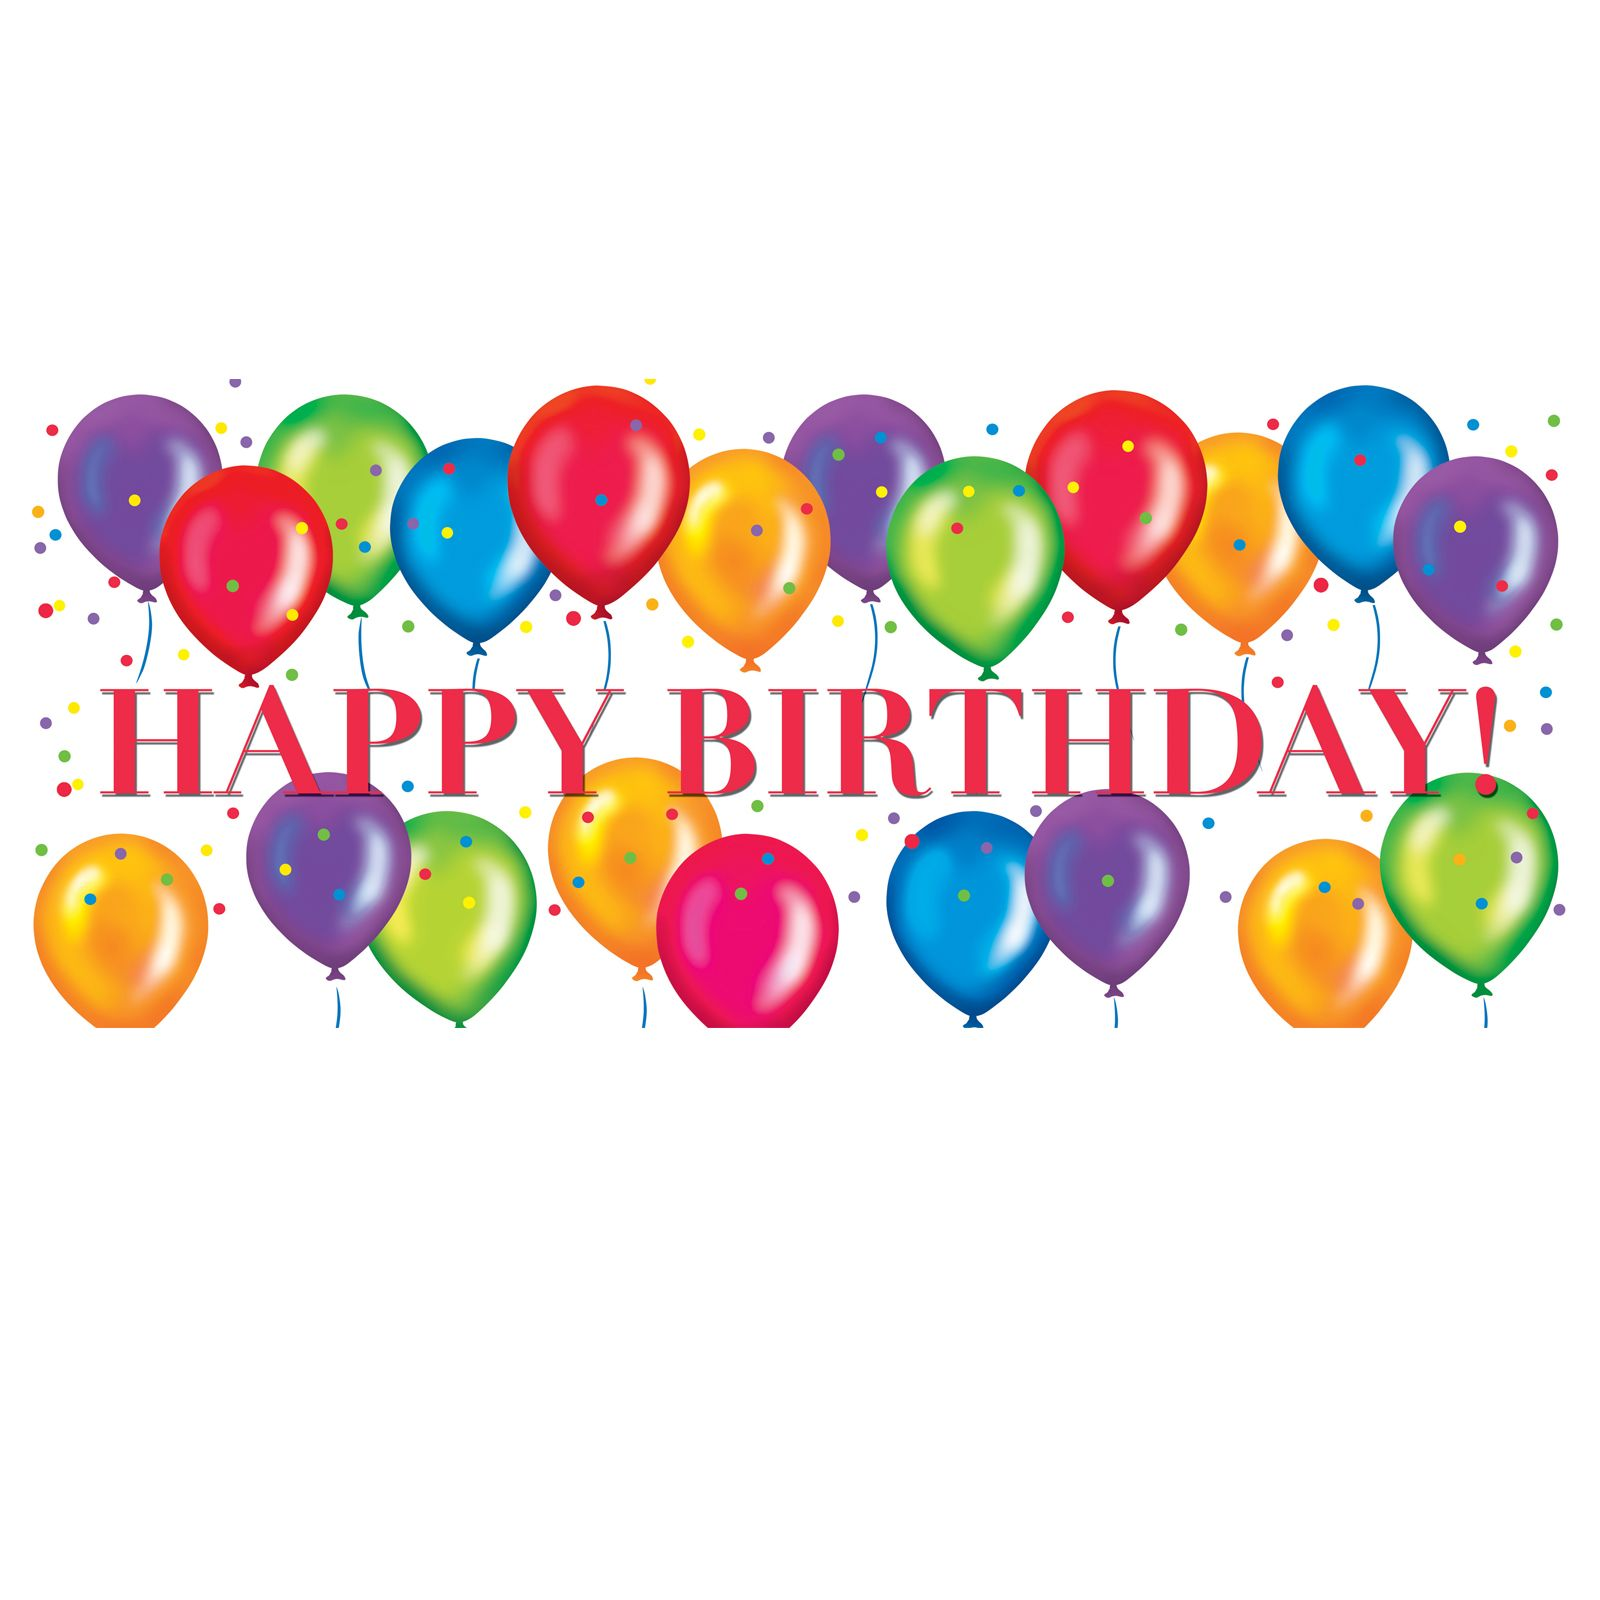 1600x1600 Free Happy Birthday Graphics Freebies